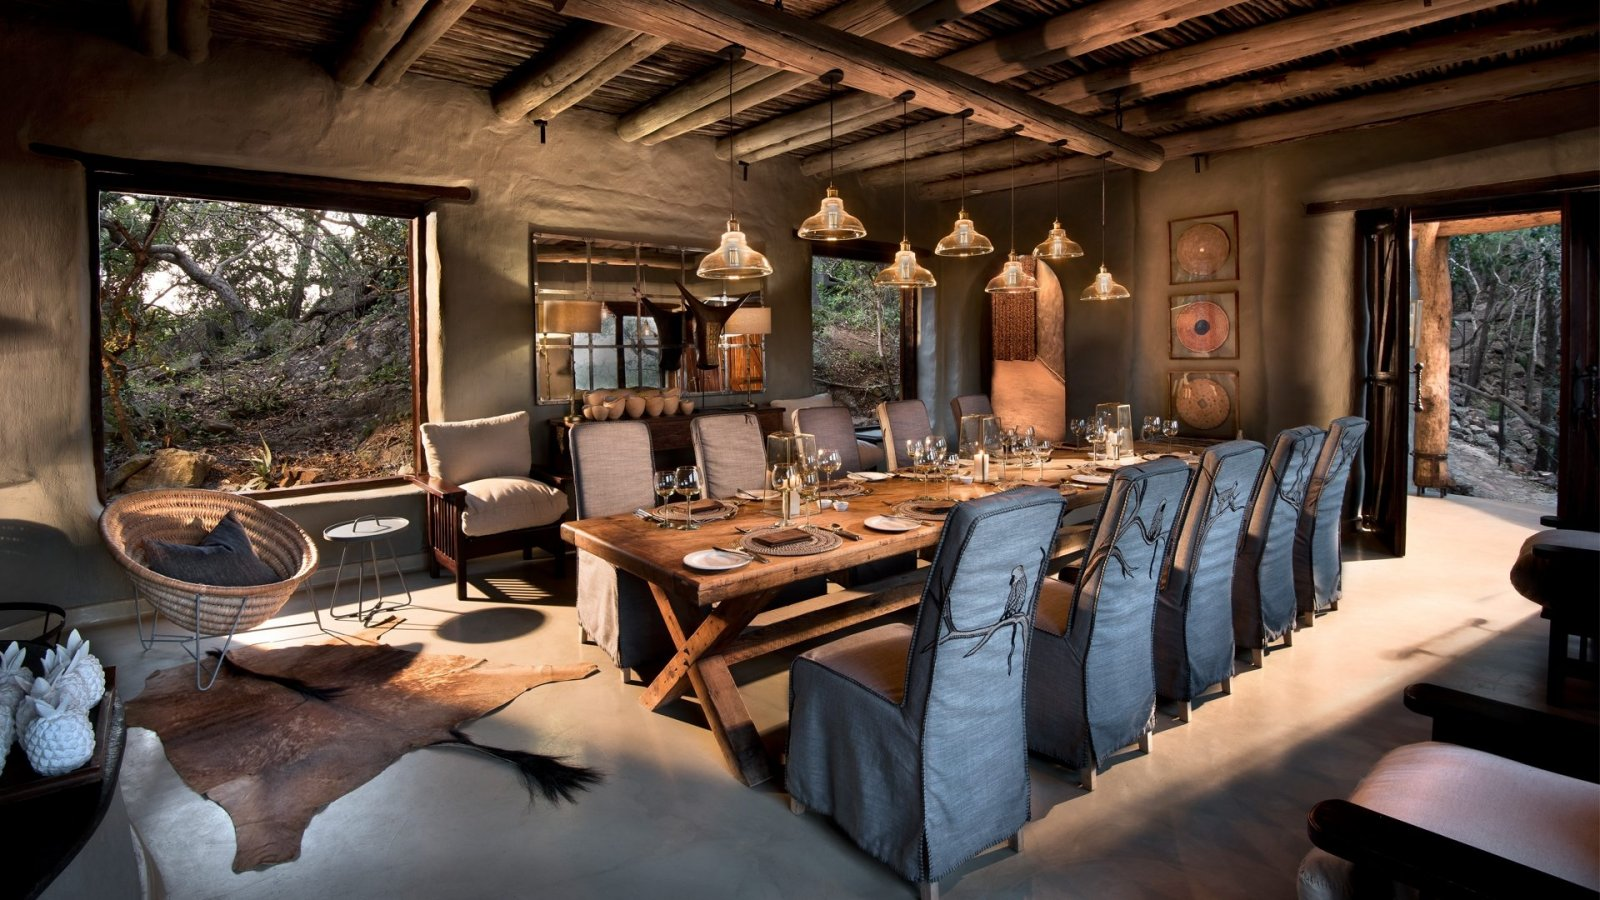 phinda-rock-lodge-dining-room-luxury-safari-south-africa.jpg